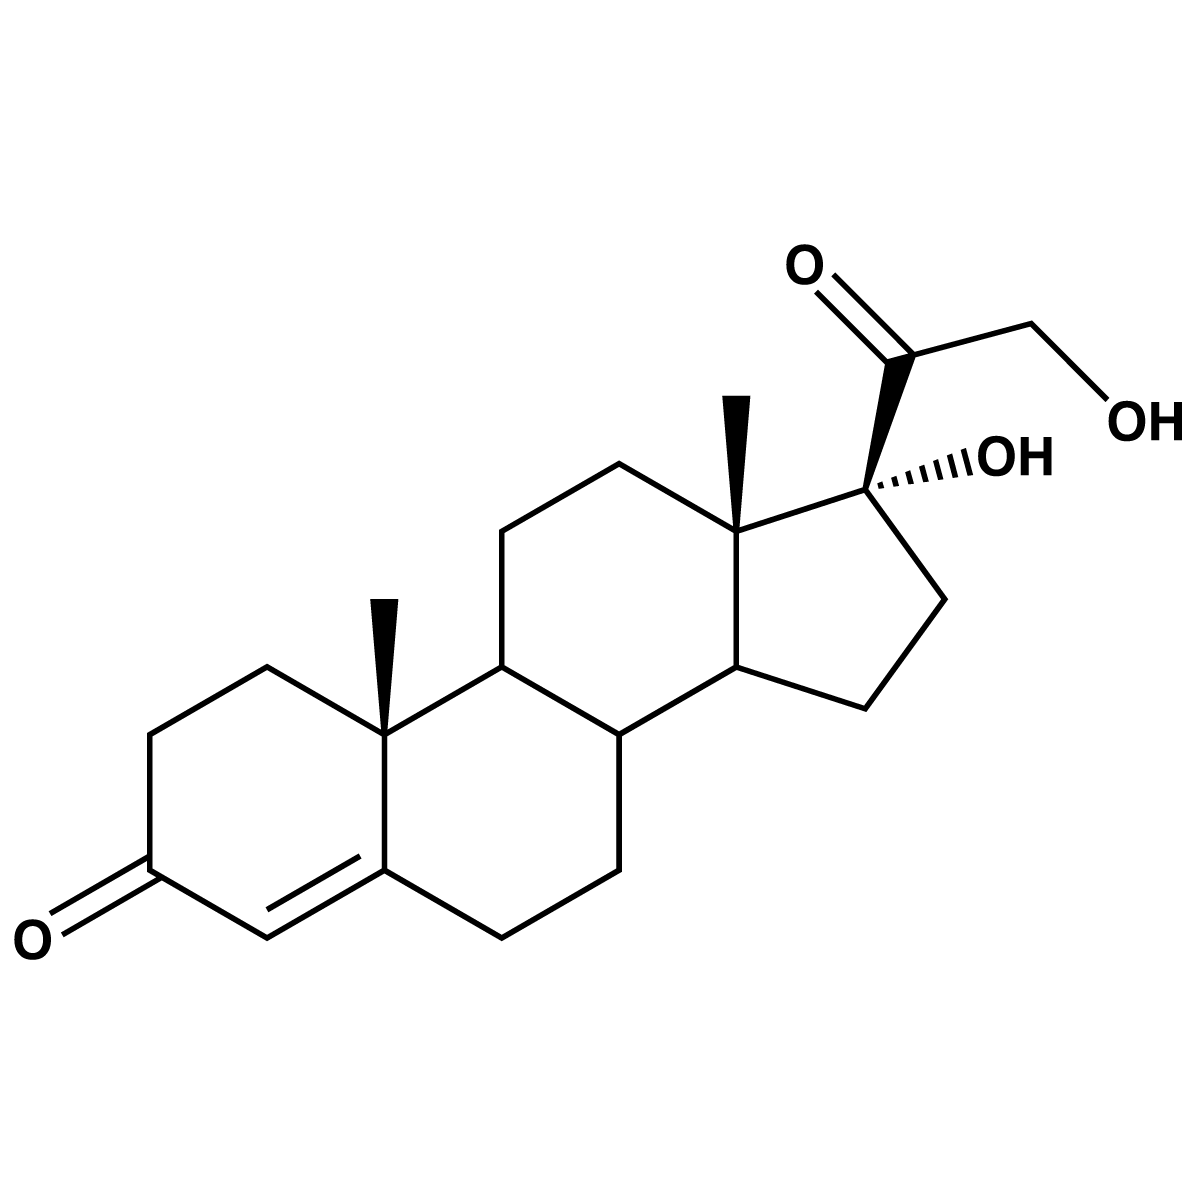 Deoxycortisol